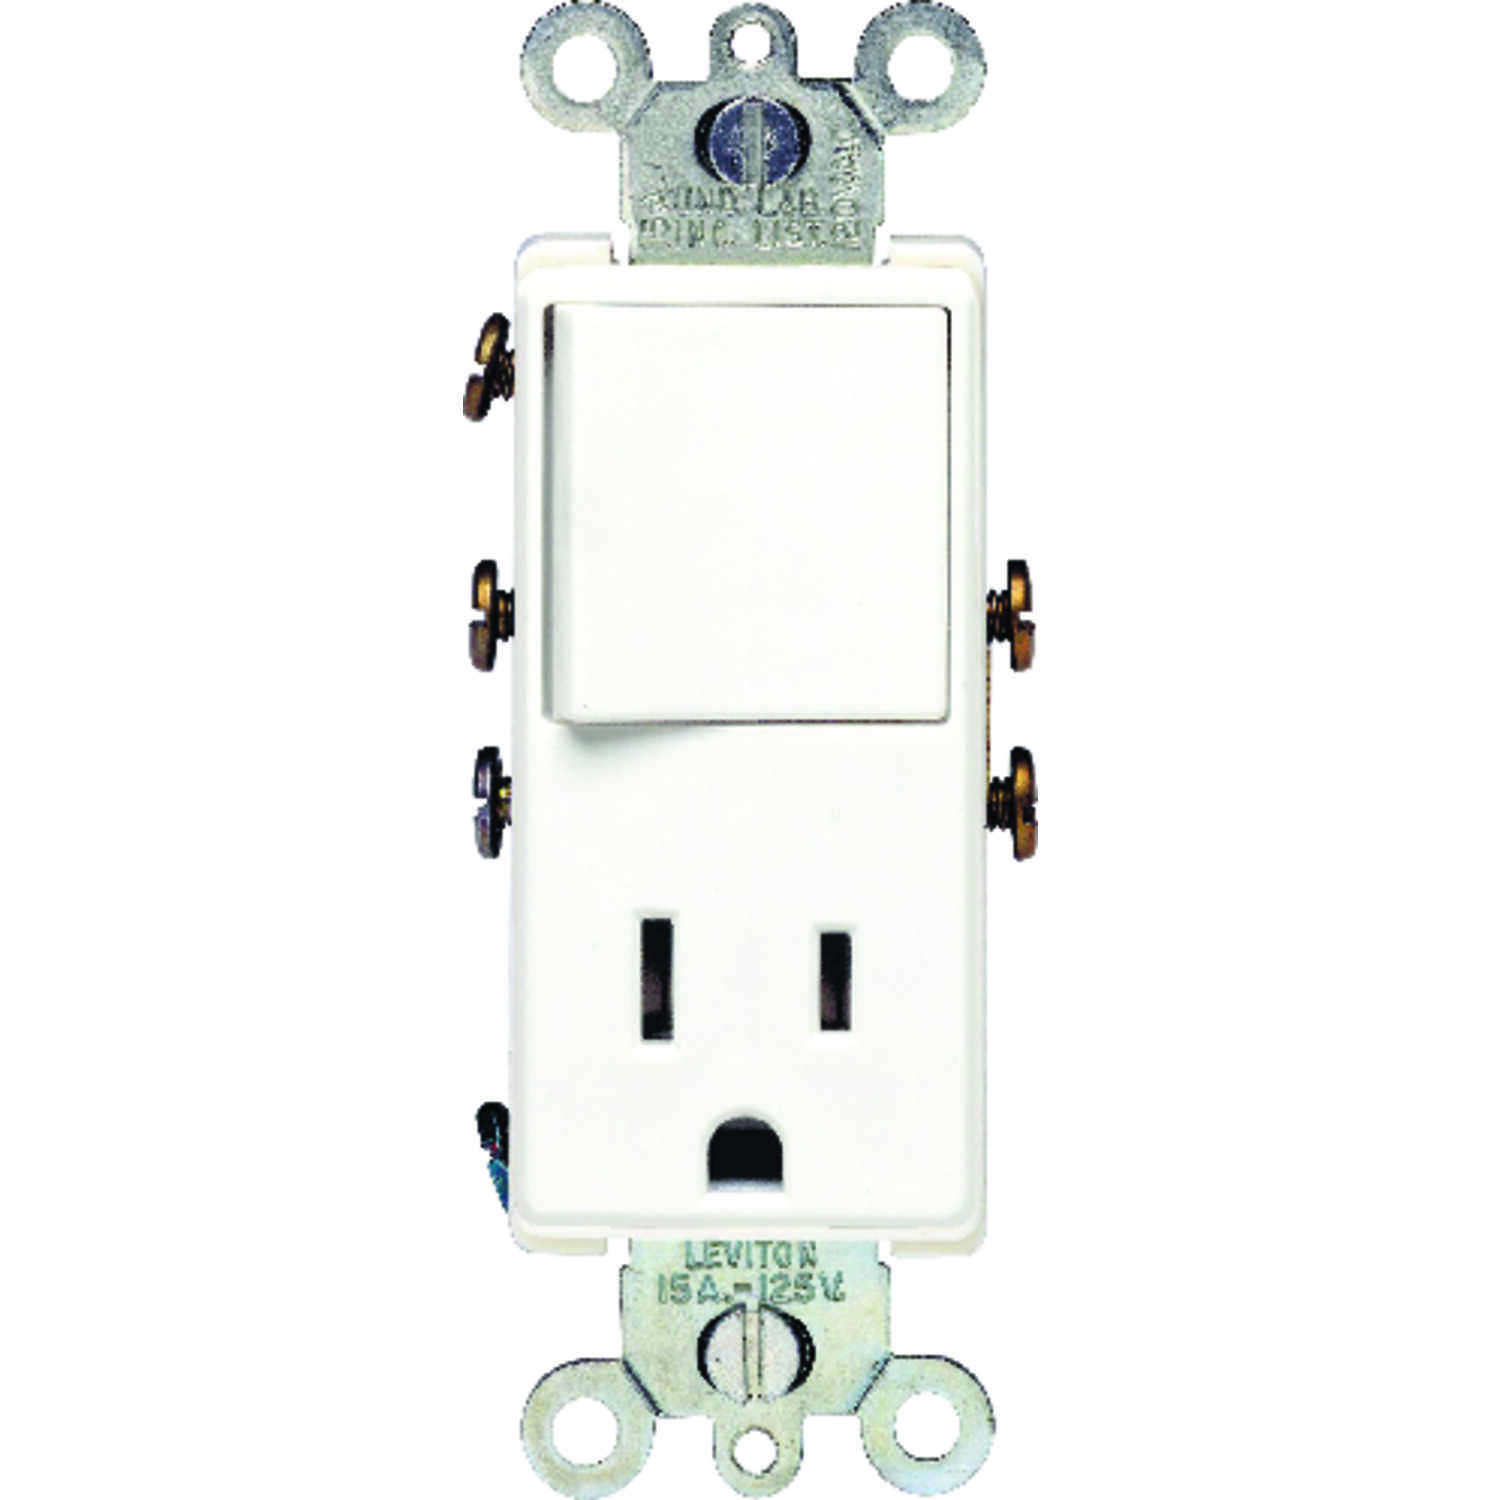 Leviton  15 amps Combination  Switch & Receptacle  1 pk White  15 amps